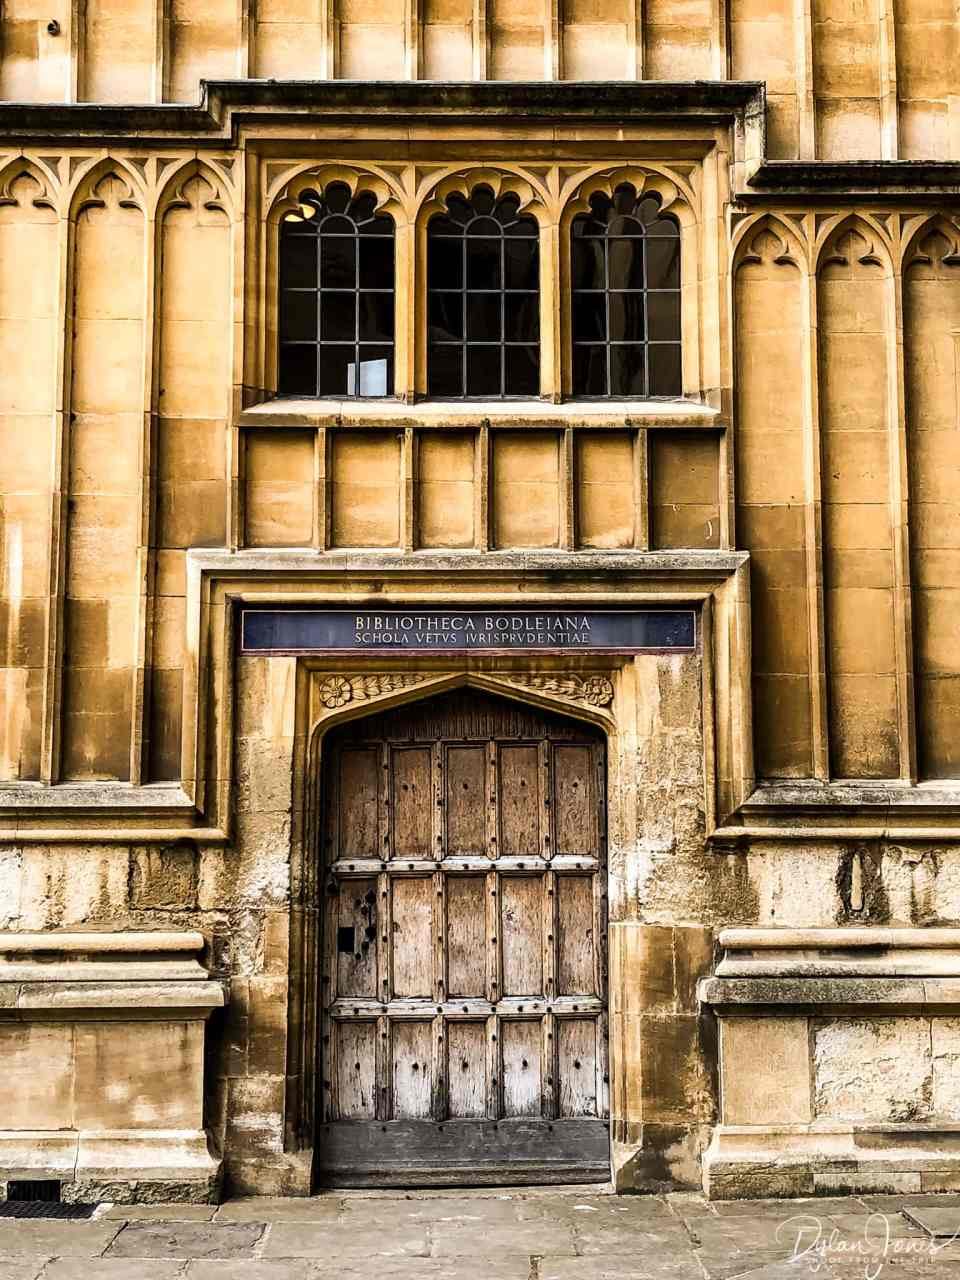 A doorway to the Bodleian Library